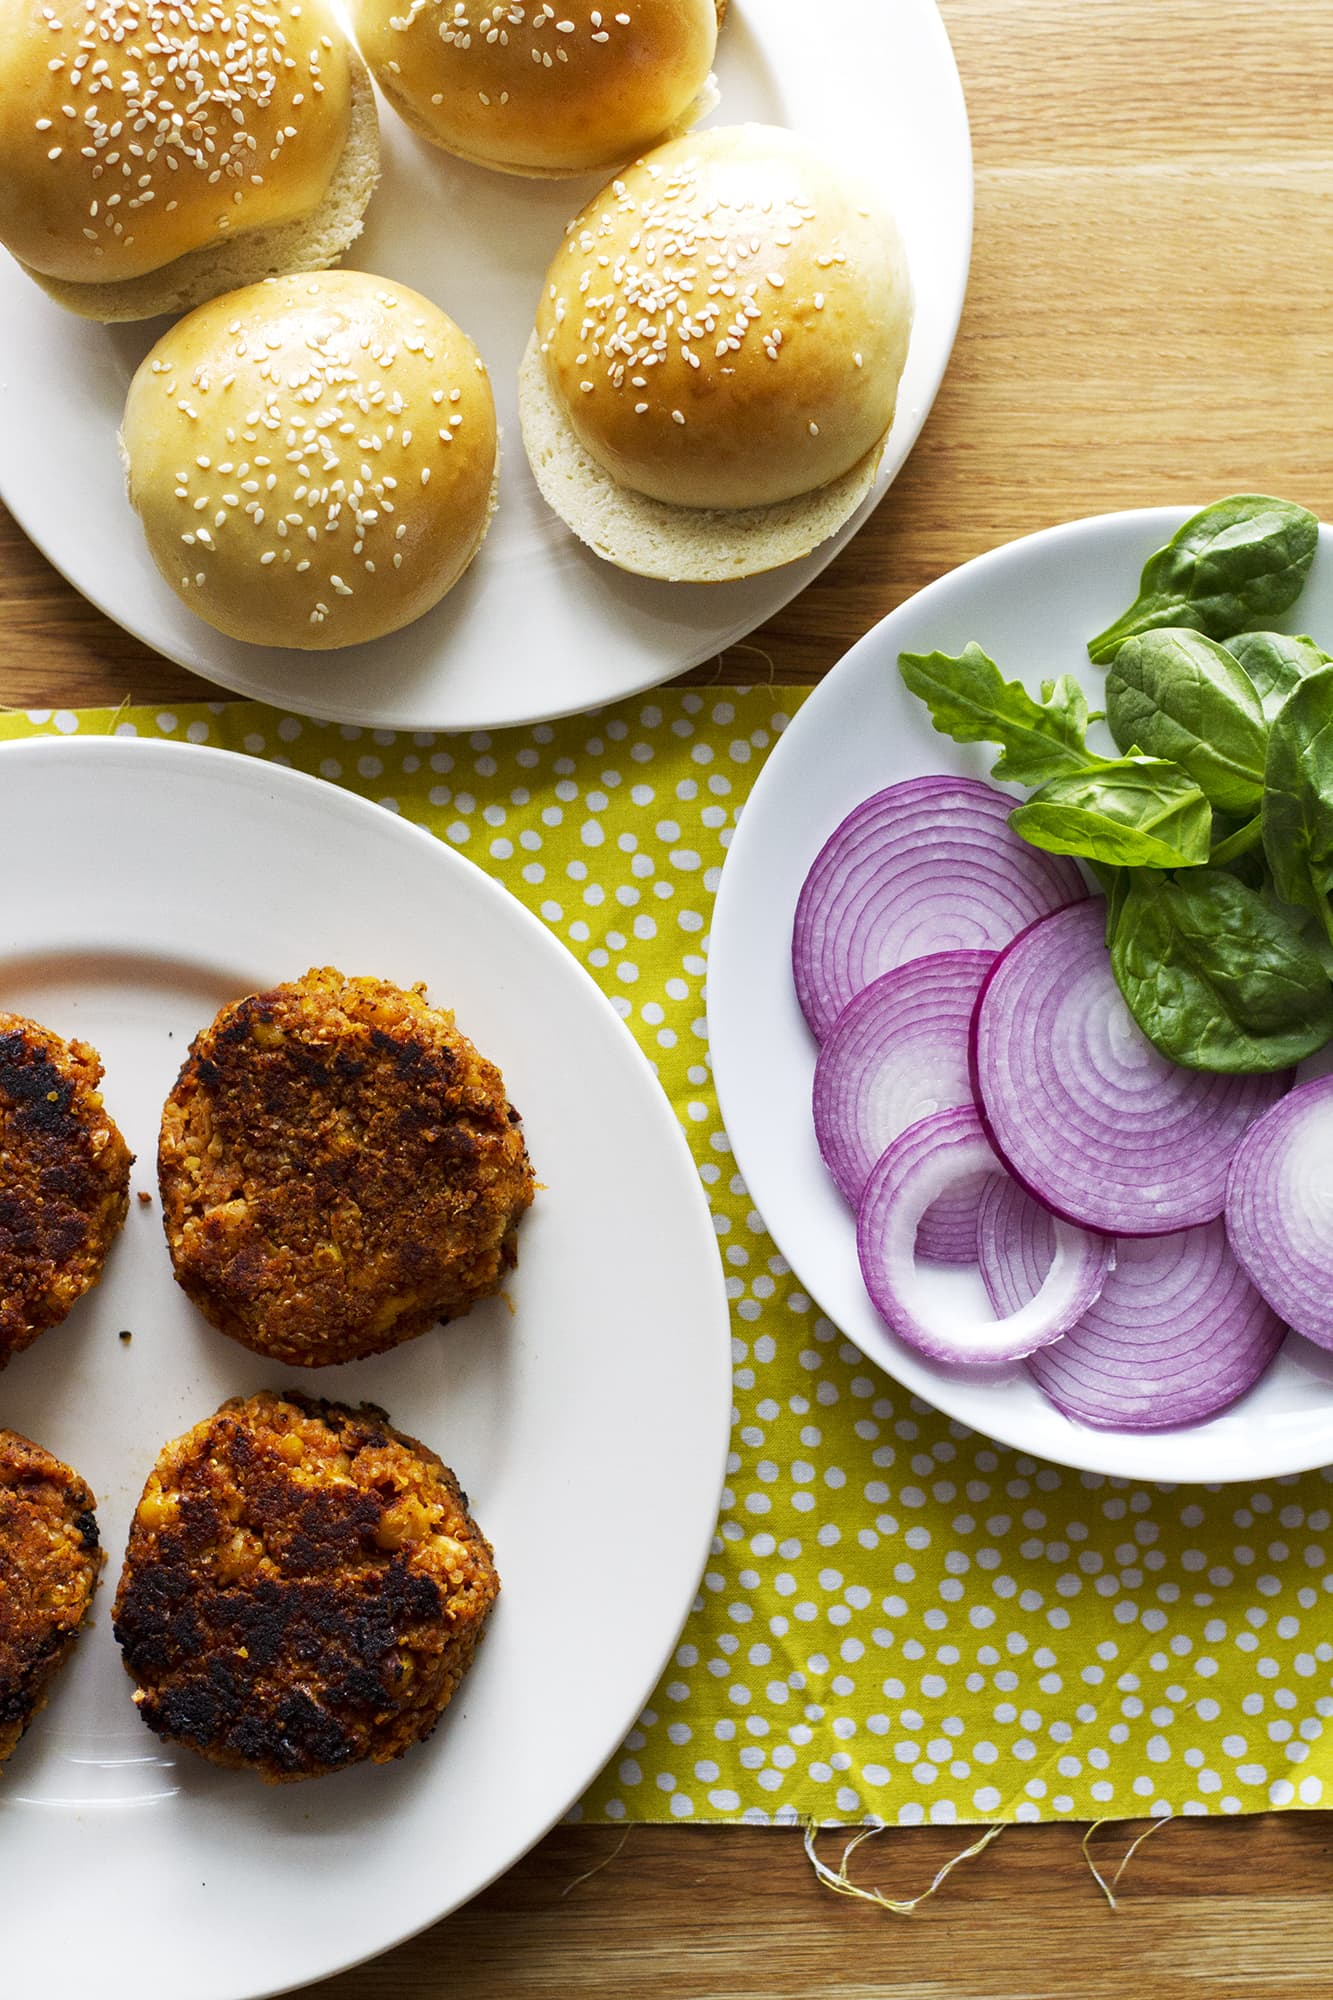 bbq veggie burgers with buns on plates